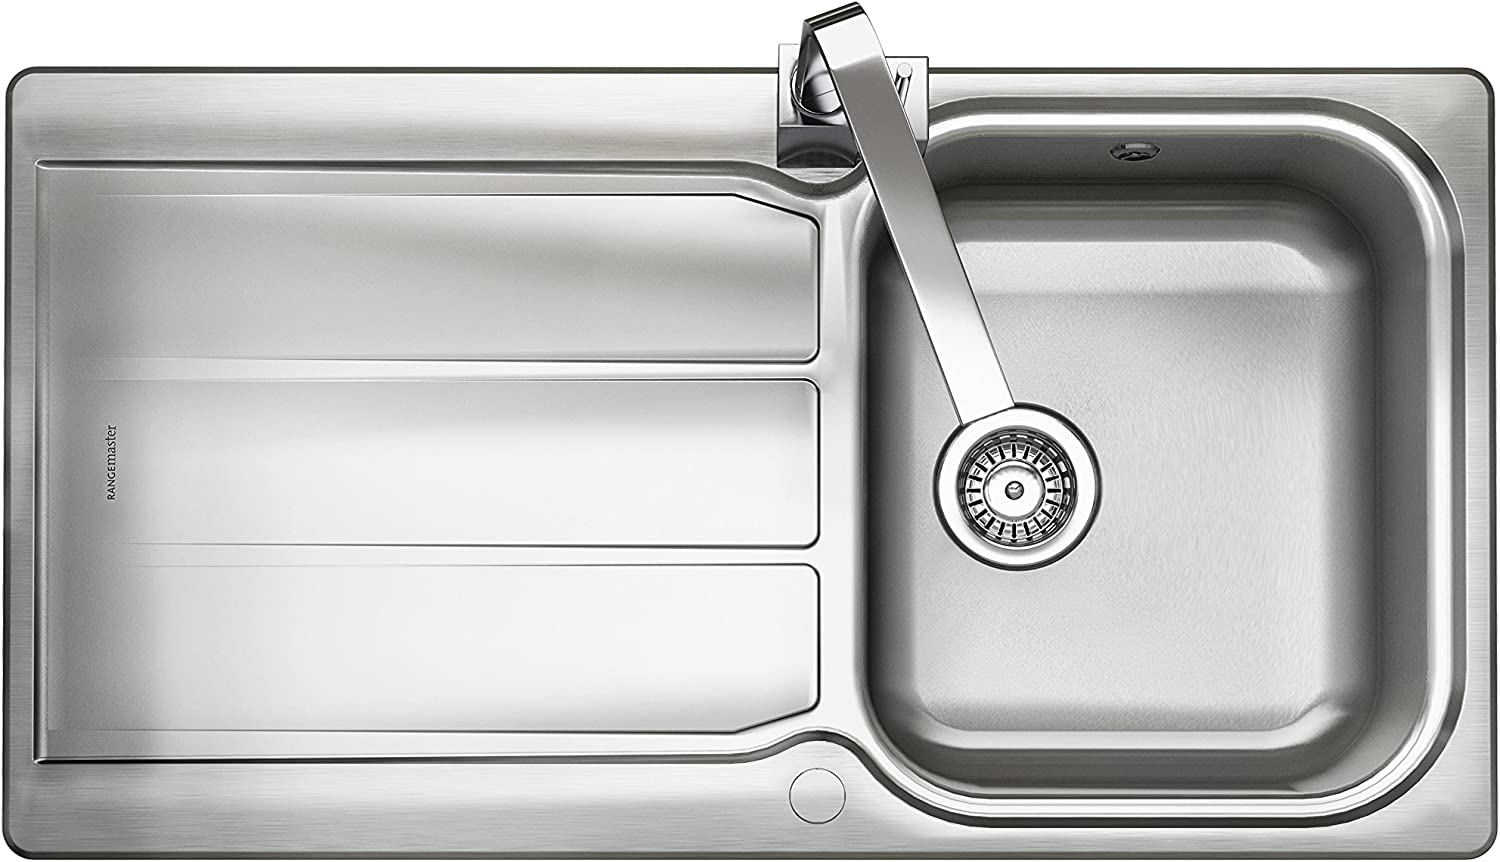 WORKTOP EXPRESS Rangemaster Sink collection - Available in a variety of Styles, Sizes and Finishes (Glendale Overmounted Inset Sink - Stainless Steel - Single Bowl (Reversible) - 950mm x 508mm)